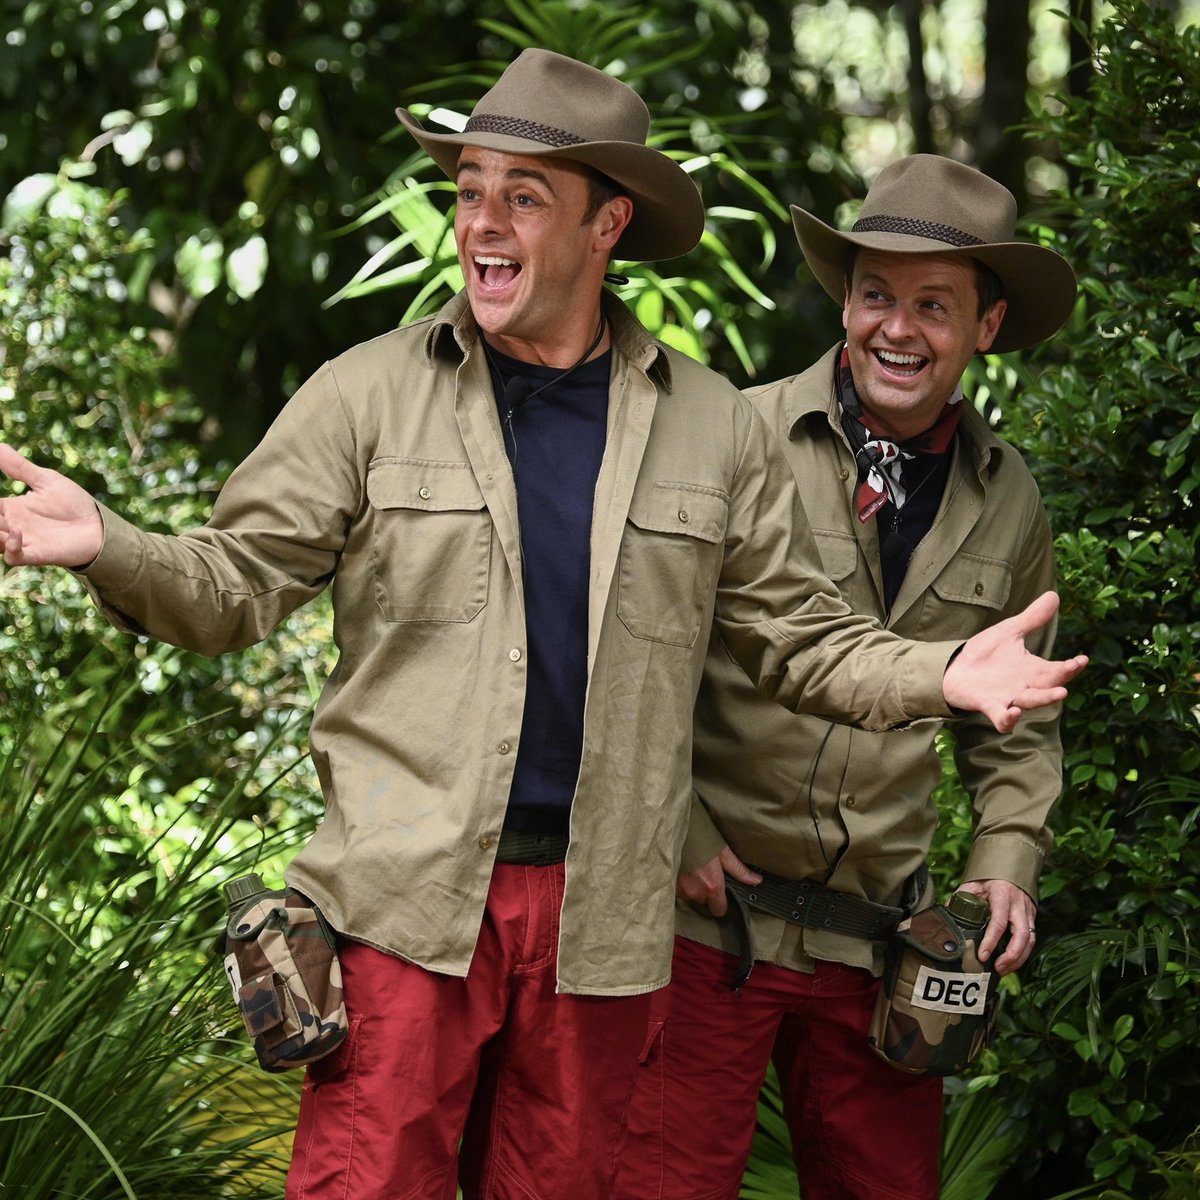 Well, we did it. We finally got talked into doing a #BushertuckerTrial 😬🤢 Don't ask how but rest assured it was as hideous as we thought! See the full trial, and take a look back at 19 series of #ImACeleb, on A Jungle Story, 8:10pm next Sunday, 8th Nov on @ITV @WeAreSTV 🕷🐜🐛